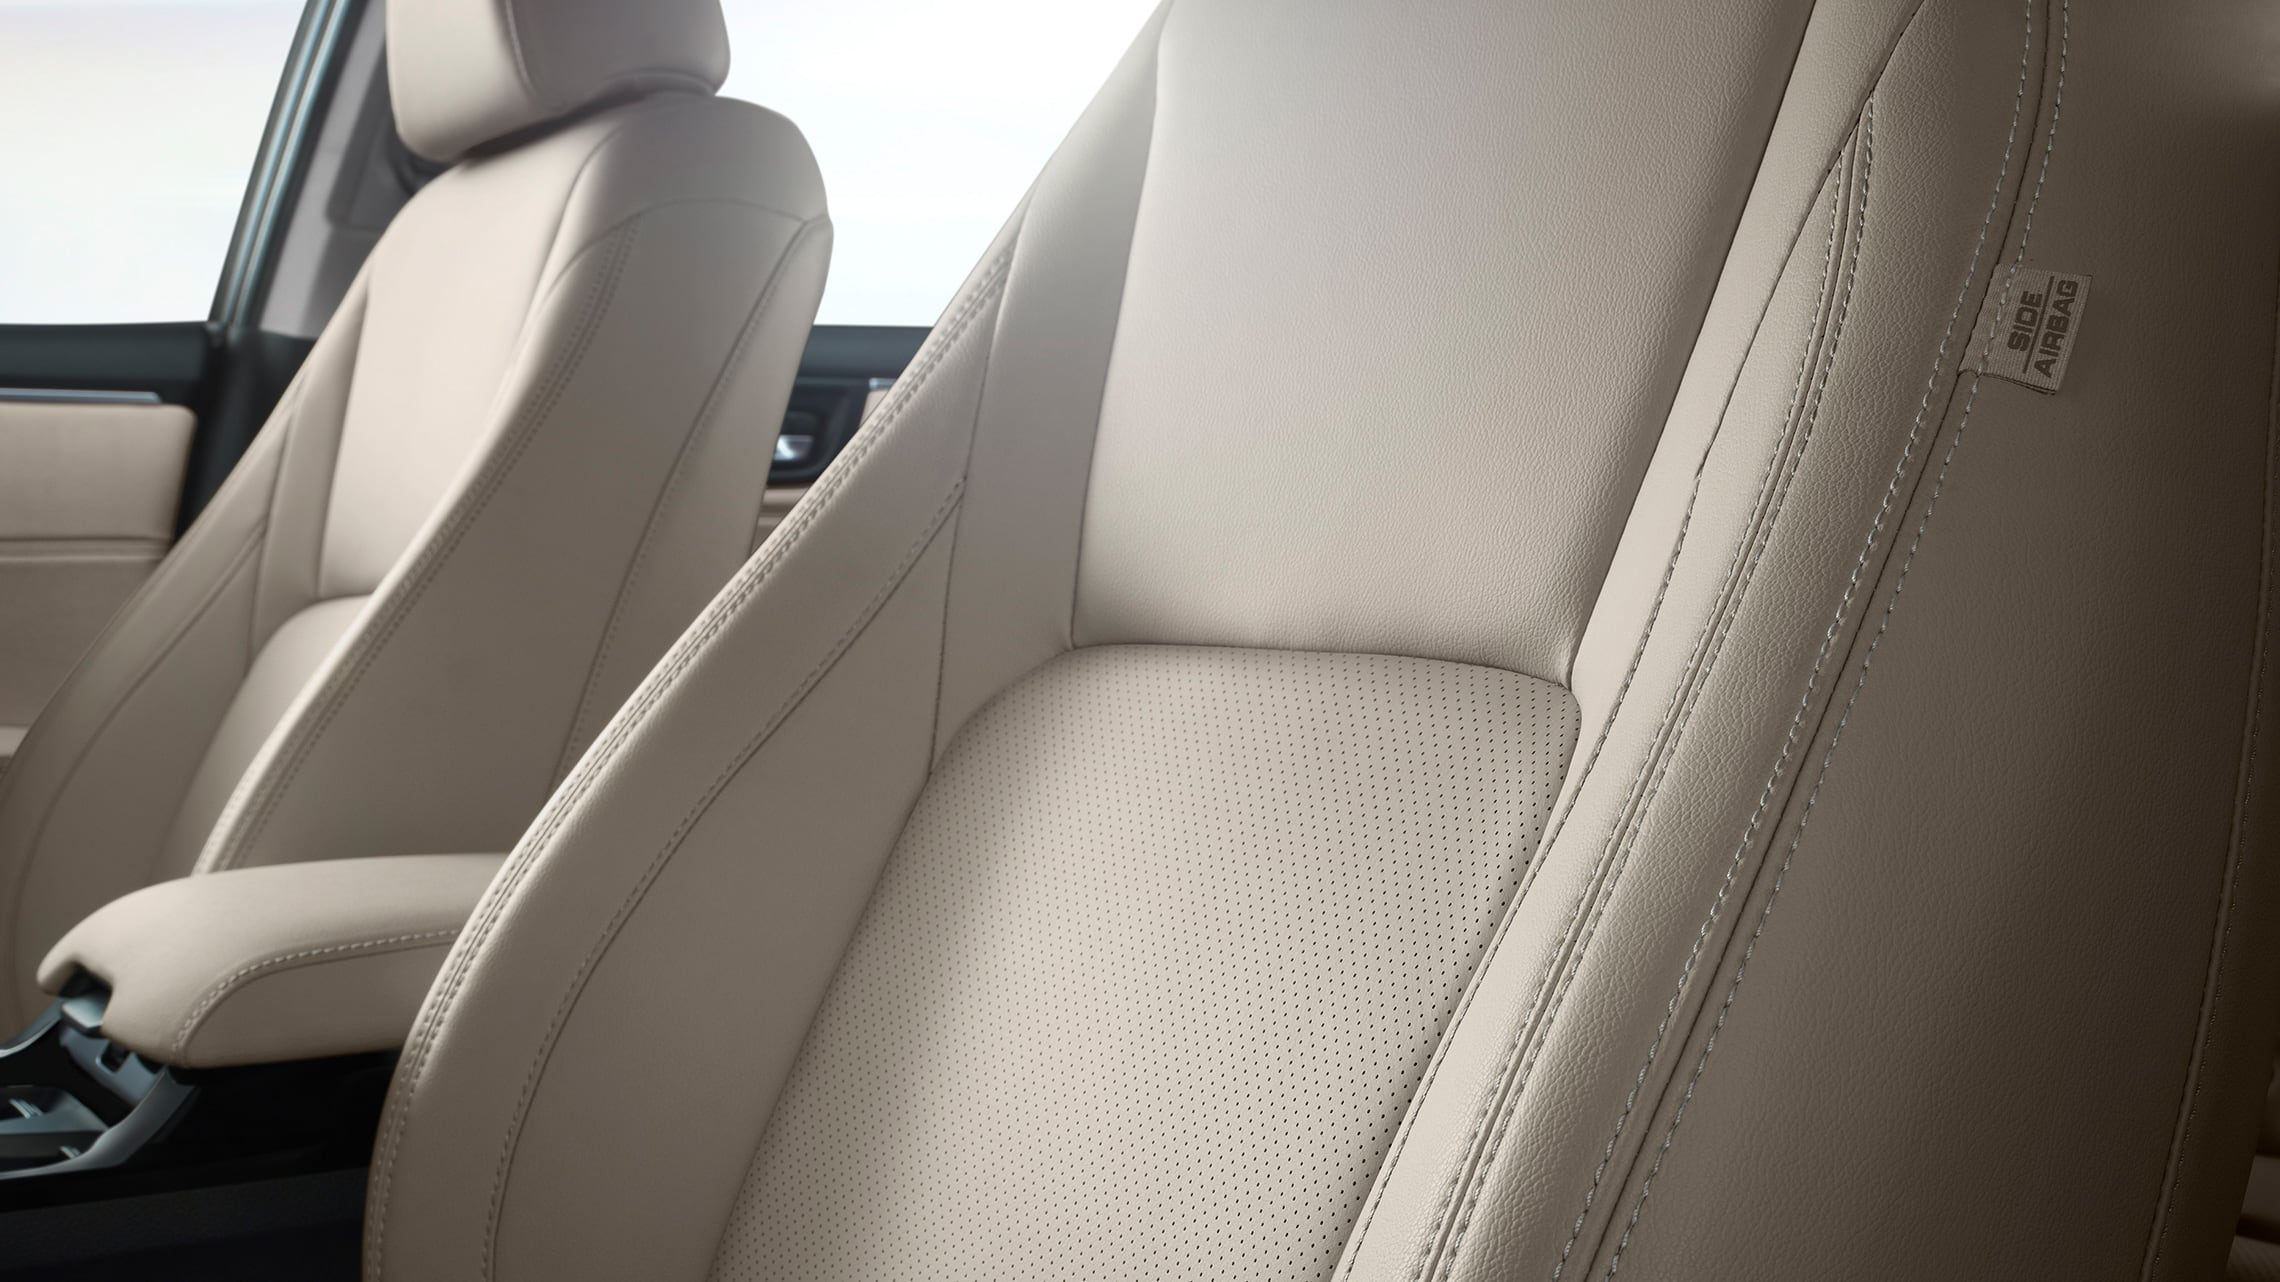 Detail of perforated seating surfaces in Beige Leather.